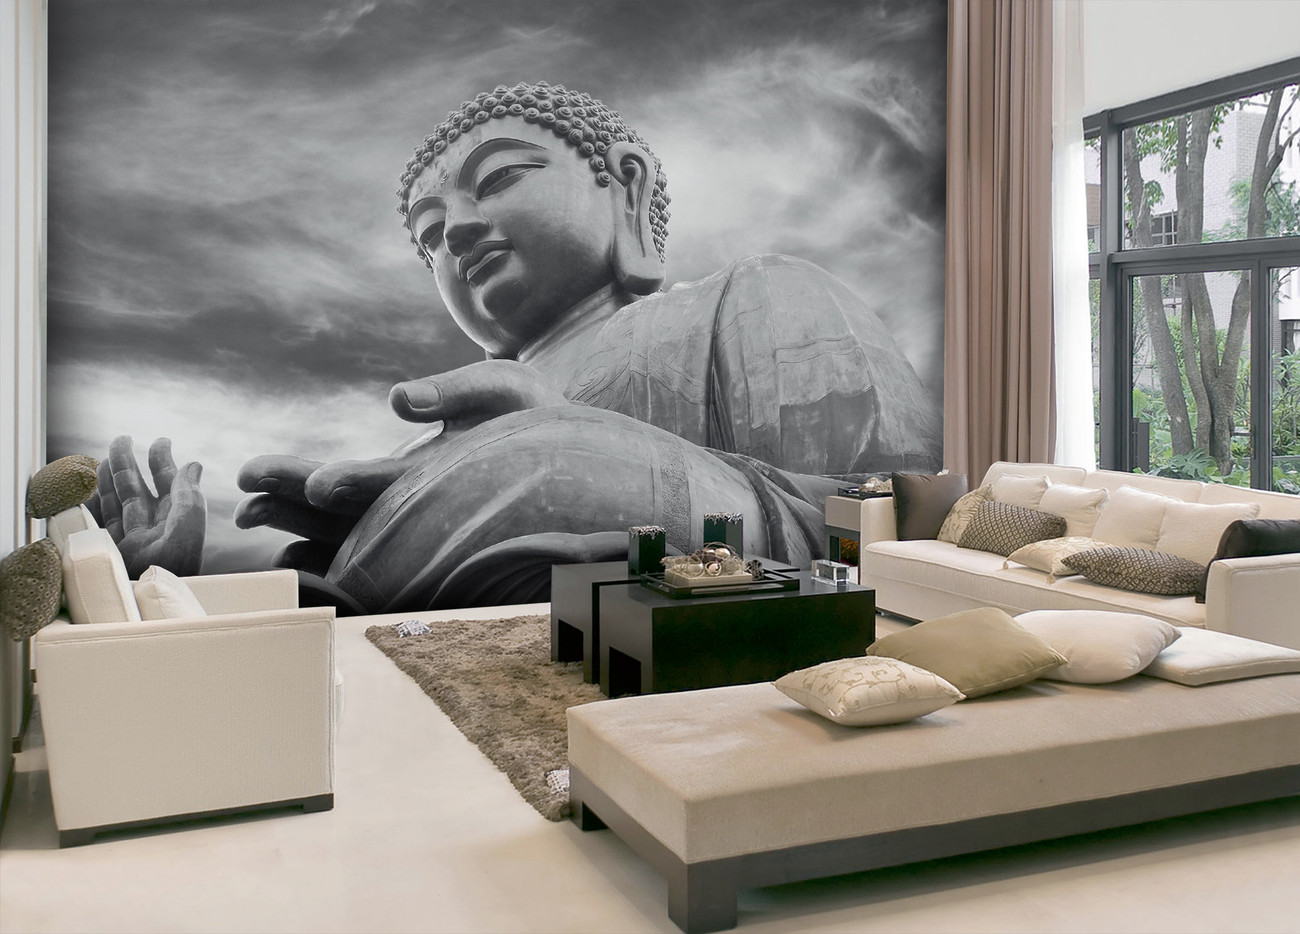 Fototapete Schlafzimmer Buddha Fototapete Tapete Buddha Black And White Bei Europosters